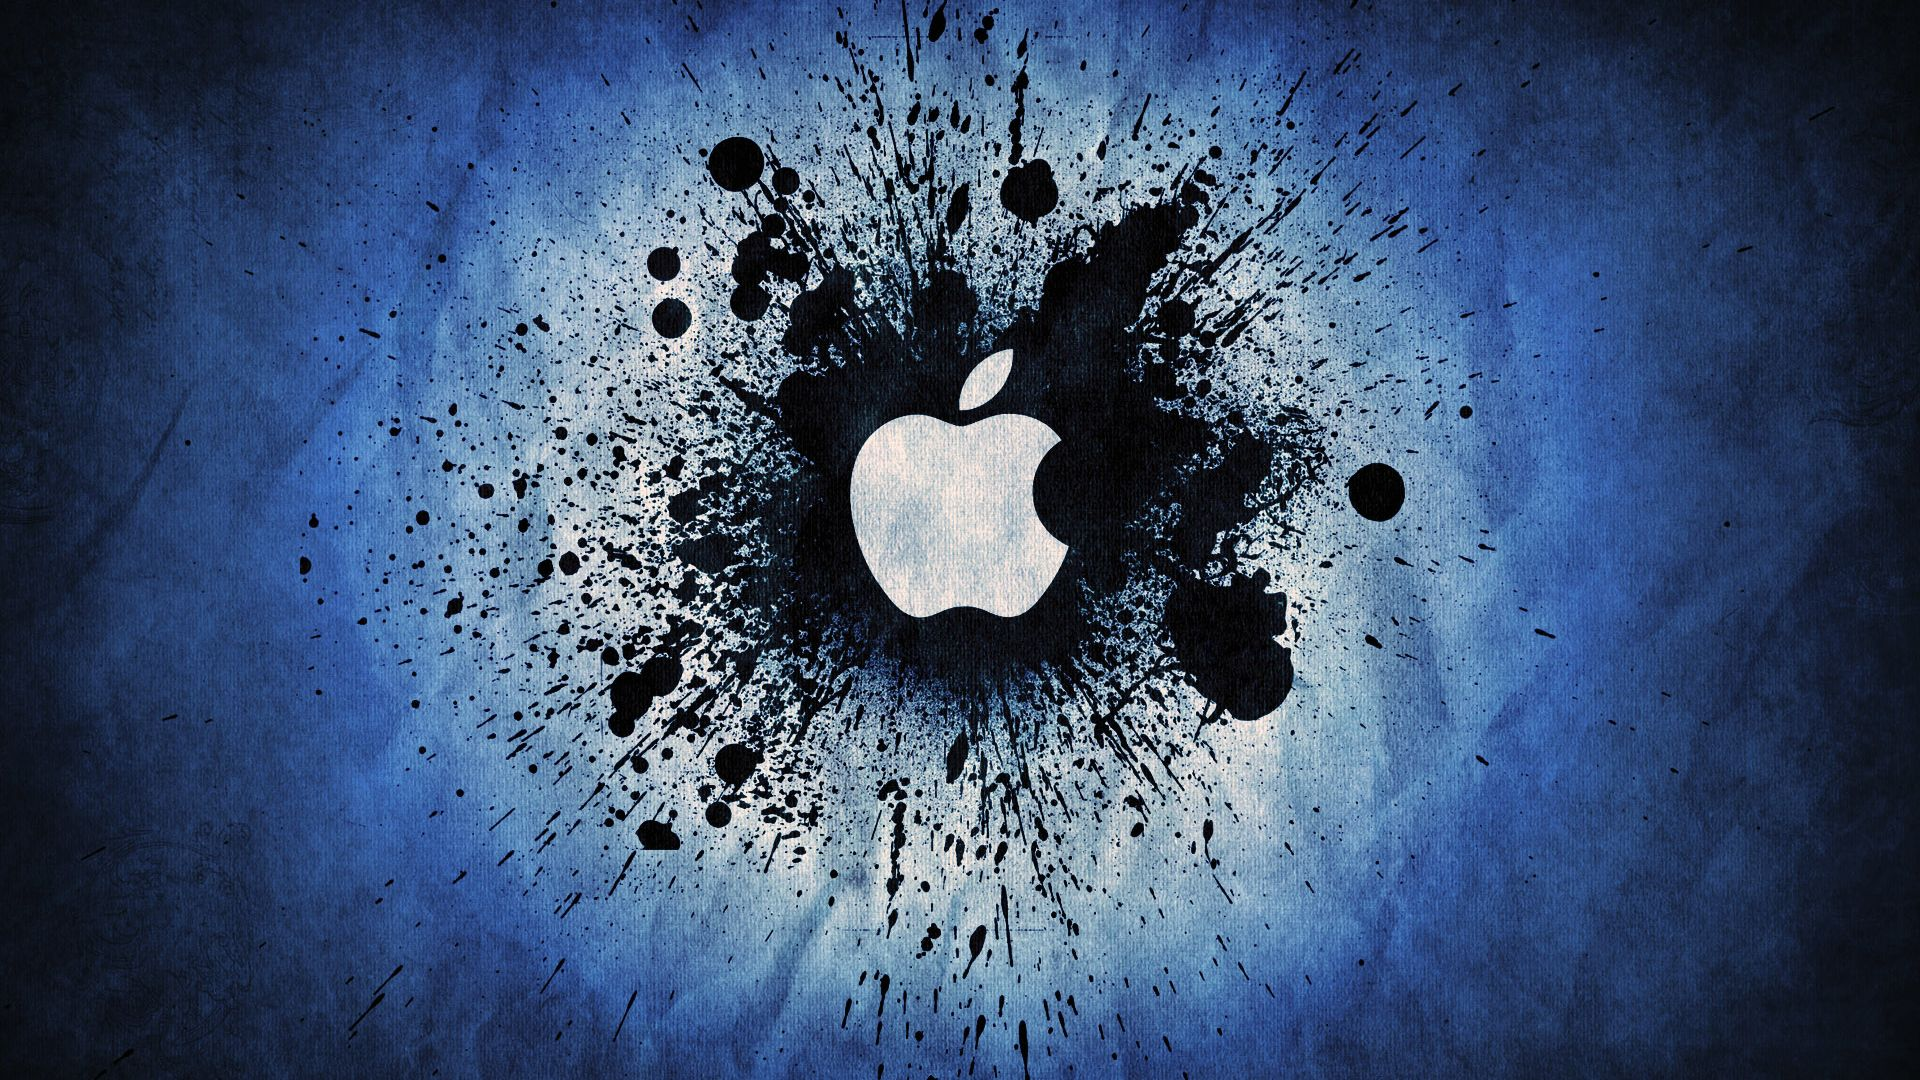 apple computers wallpapers for free download about wallpapers. | hd